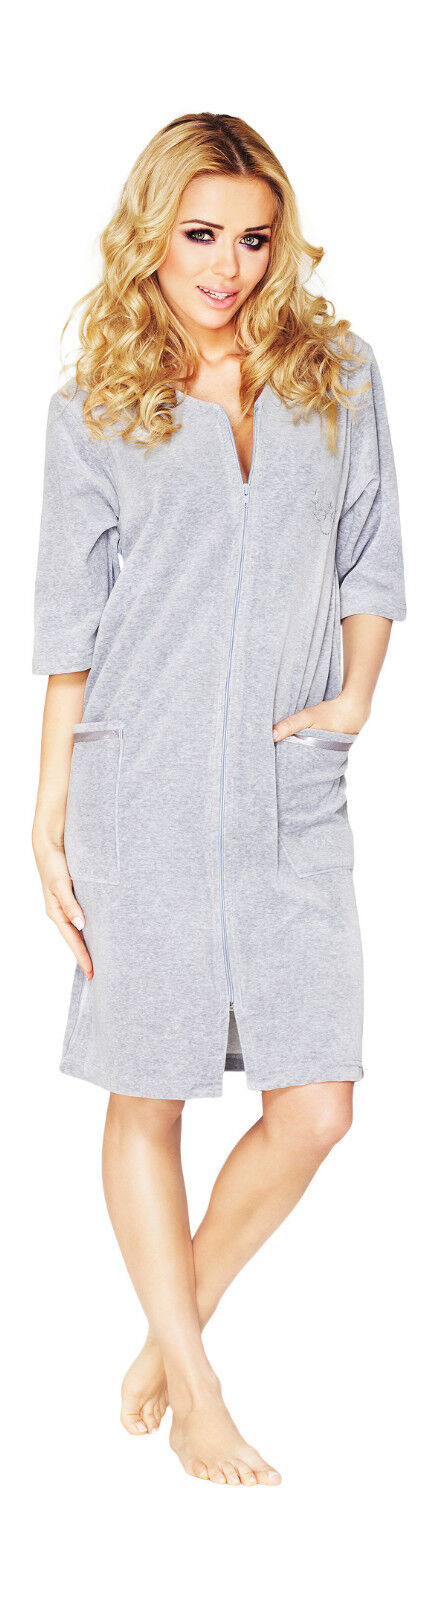 Chase away chills with our selection of women's robes and bed jackets featuring quality fabrics. You'll find housecoats and bathrobes for women in cozy flannel, cool cotton, and breathable blends, because every season has its chilly moments.